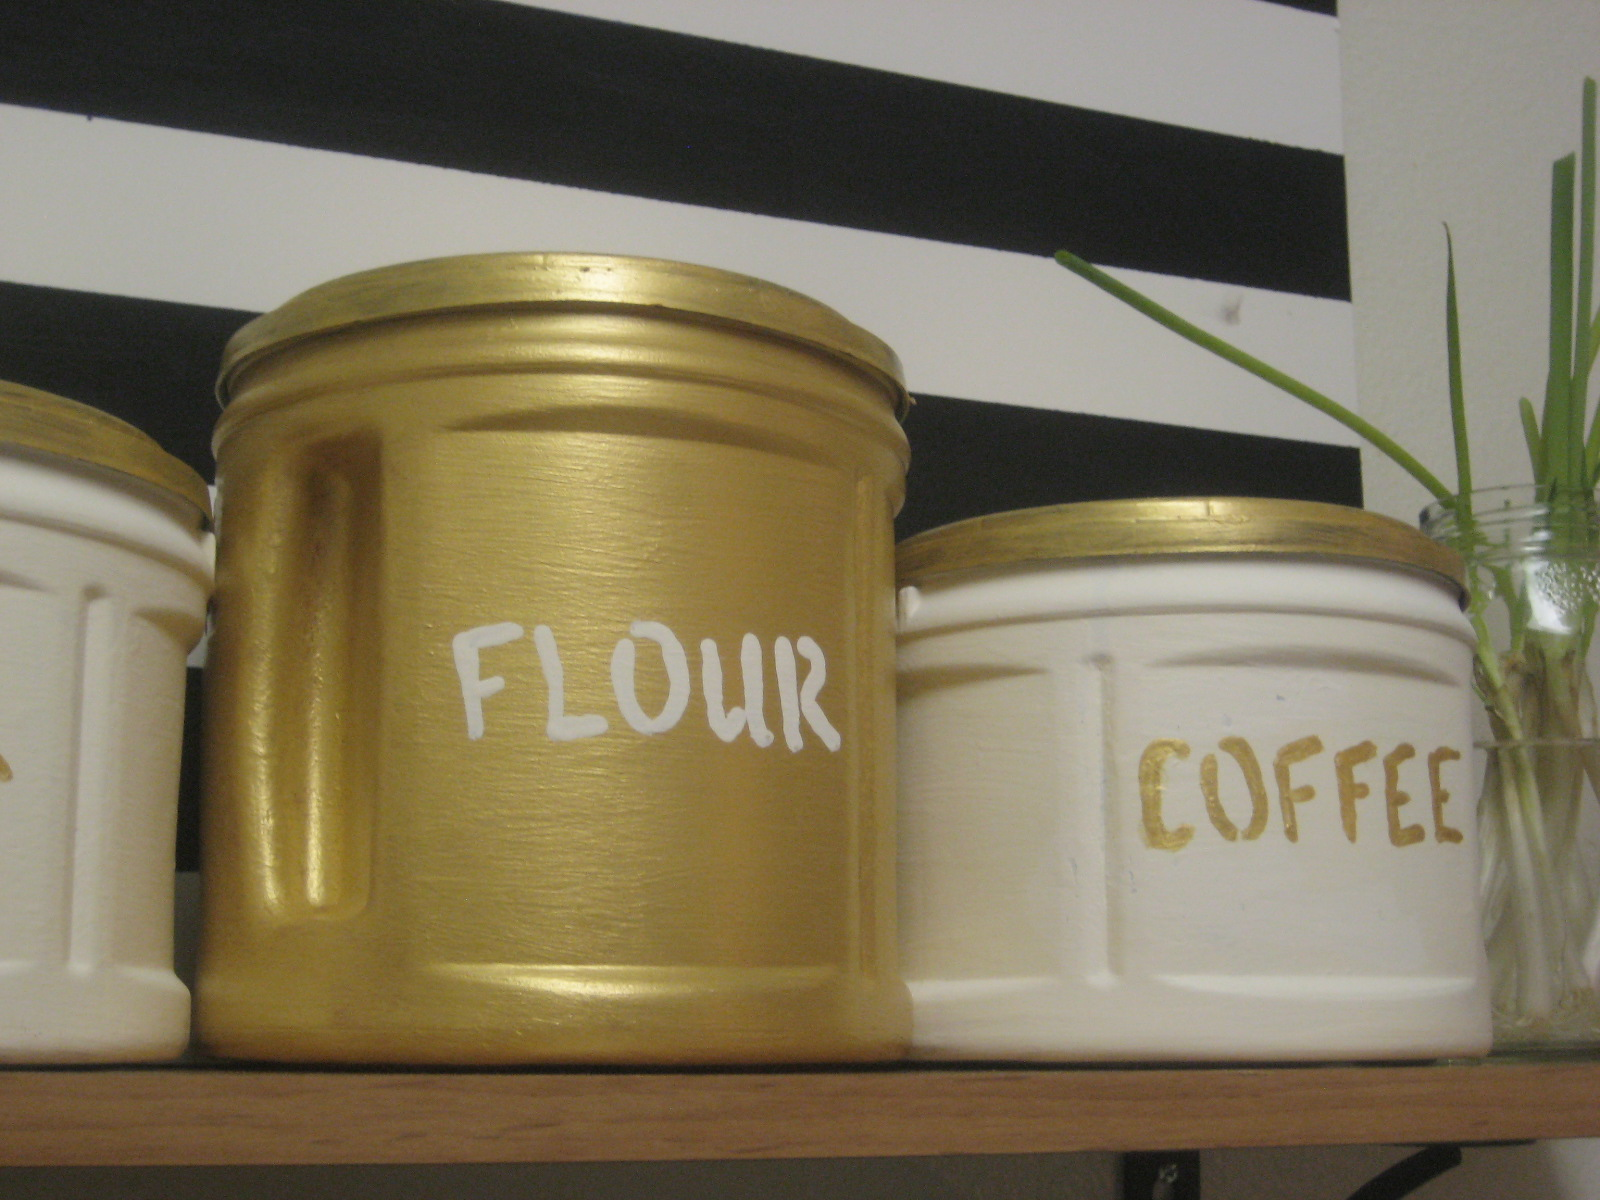 Diy gilded canisters made from plastic folgers coffee - What are coffee cans made of ...